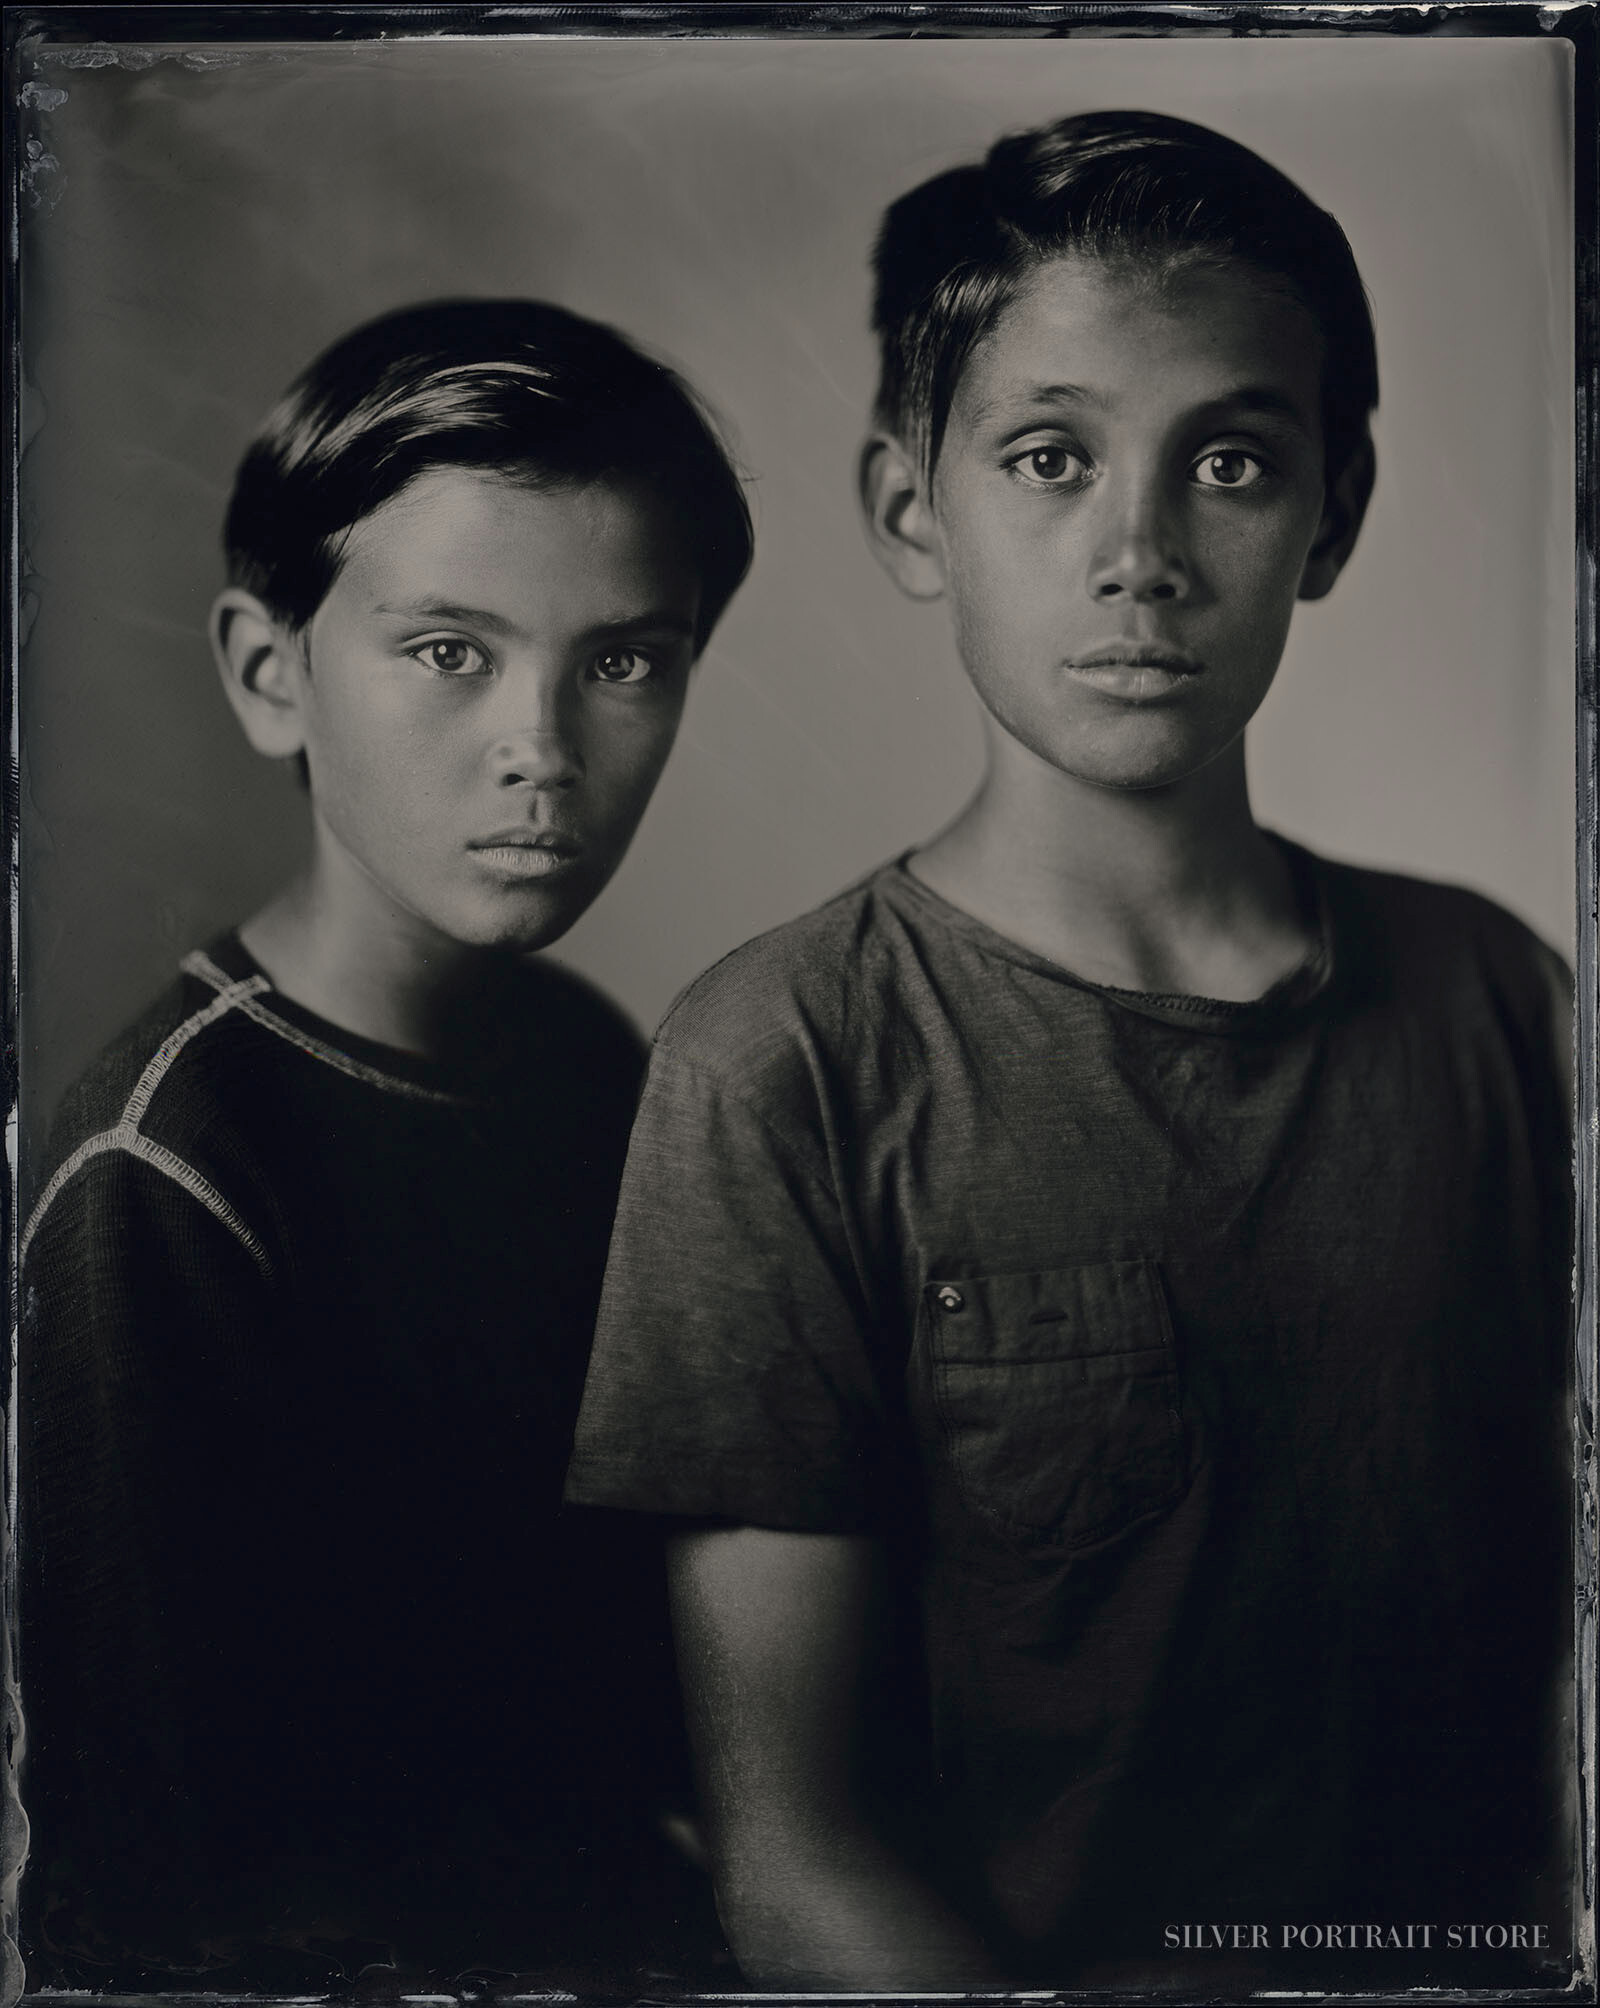 Diego & Santino-Silver Portrait Store-Scan from Wet plate collodion-Tintype 20 x 25 cm.